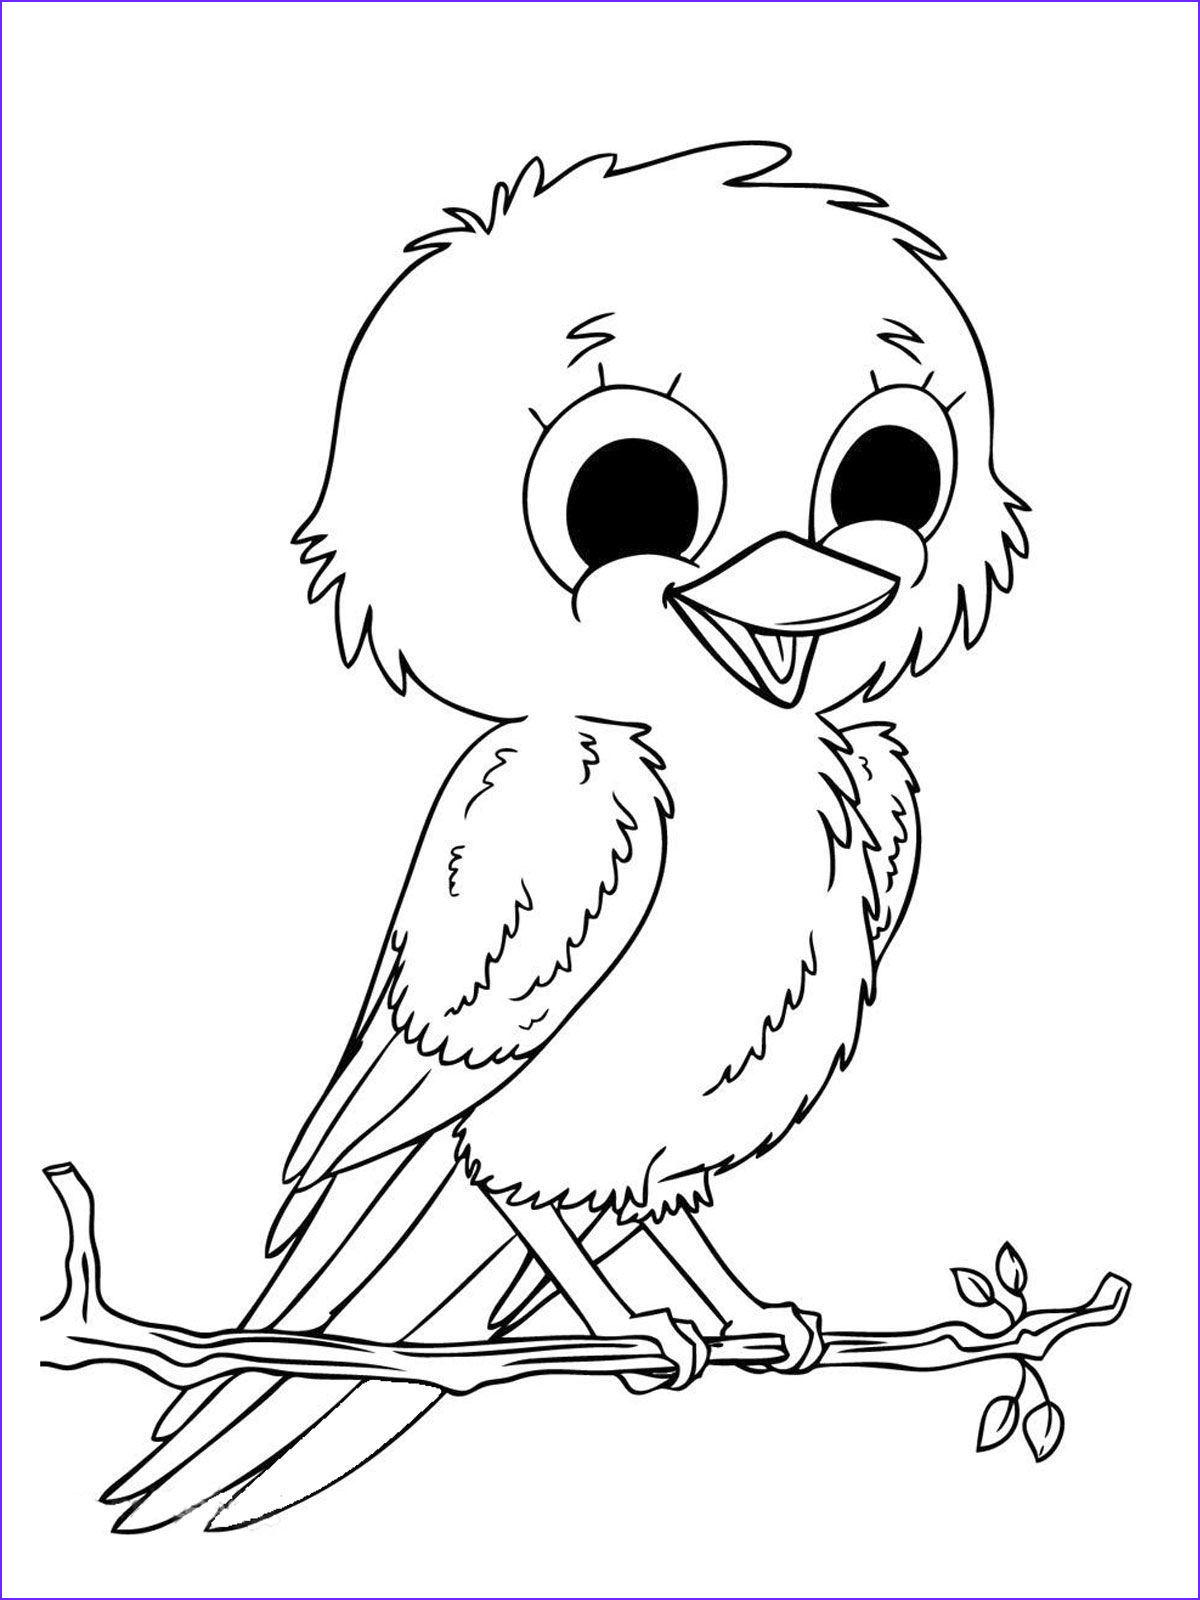 All Coloring Pages Luxury Gallery Free Coloring Pages